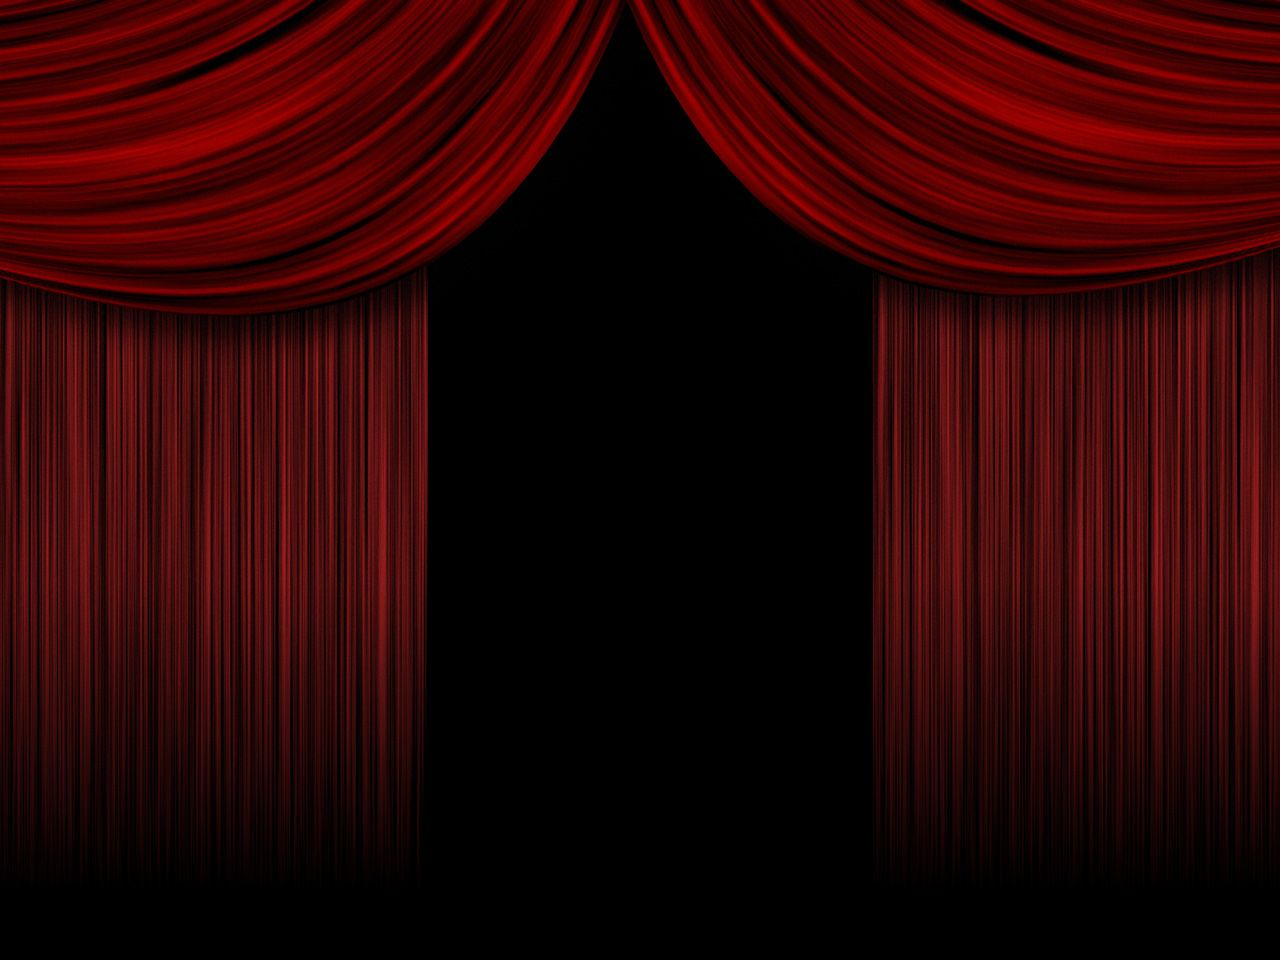 curtains Create stage curtains in 11 easy steps